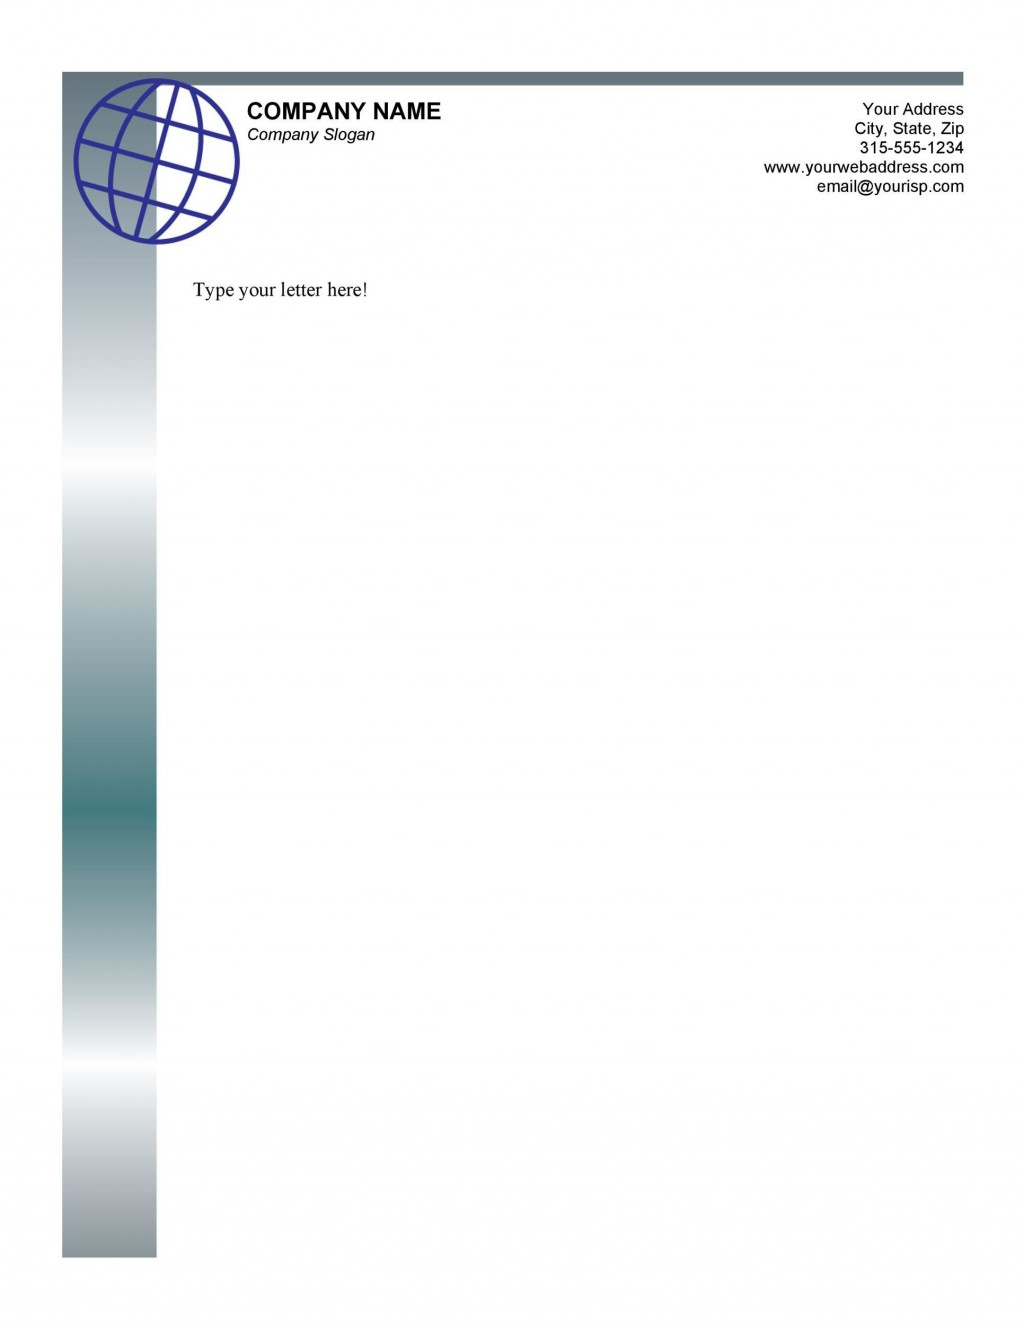 005 Fearsome Letterhead Format Excel Free Download Concept Large